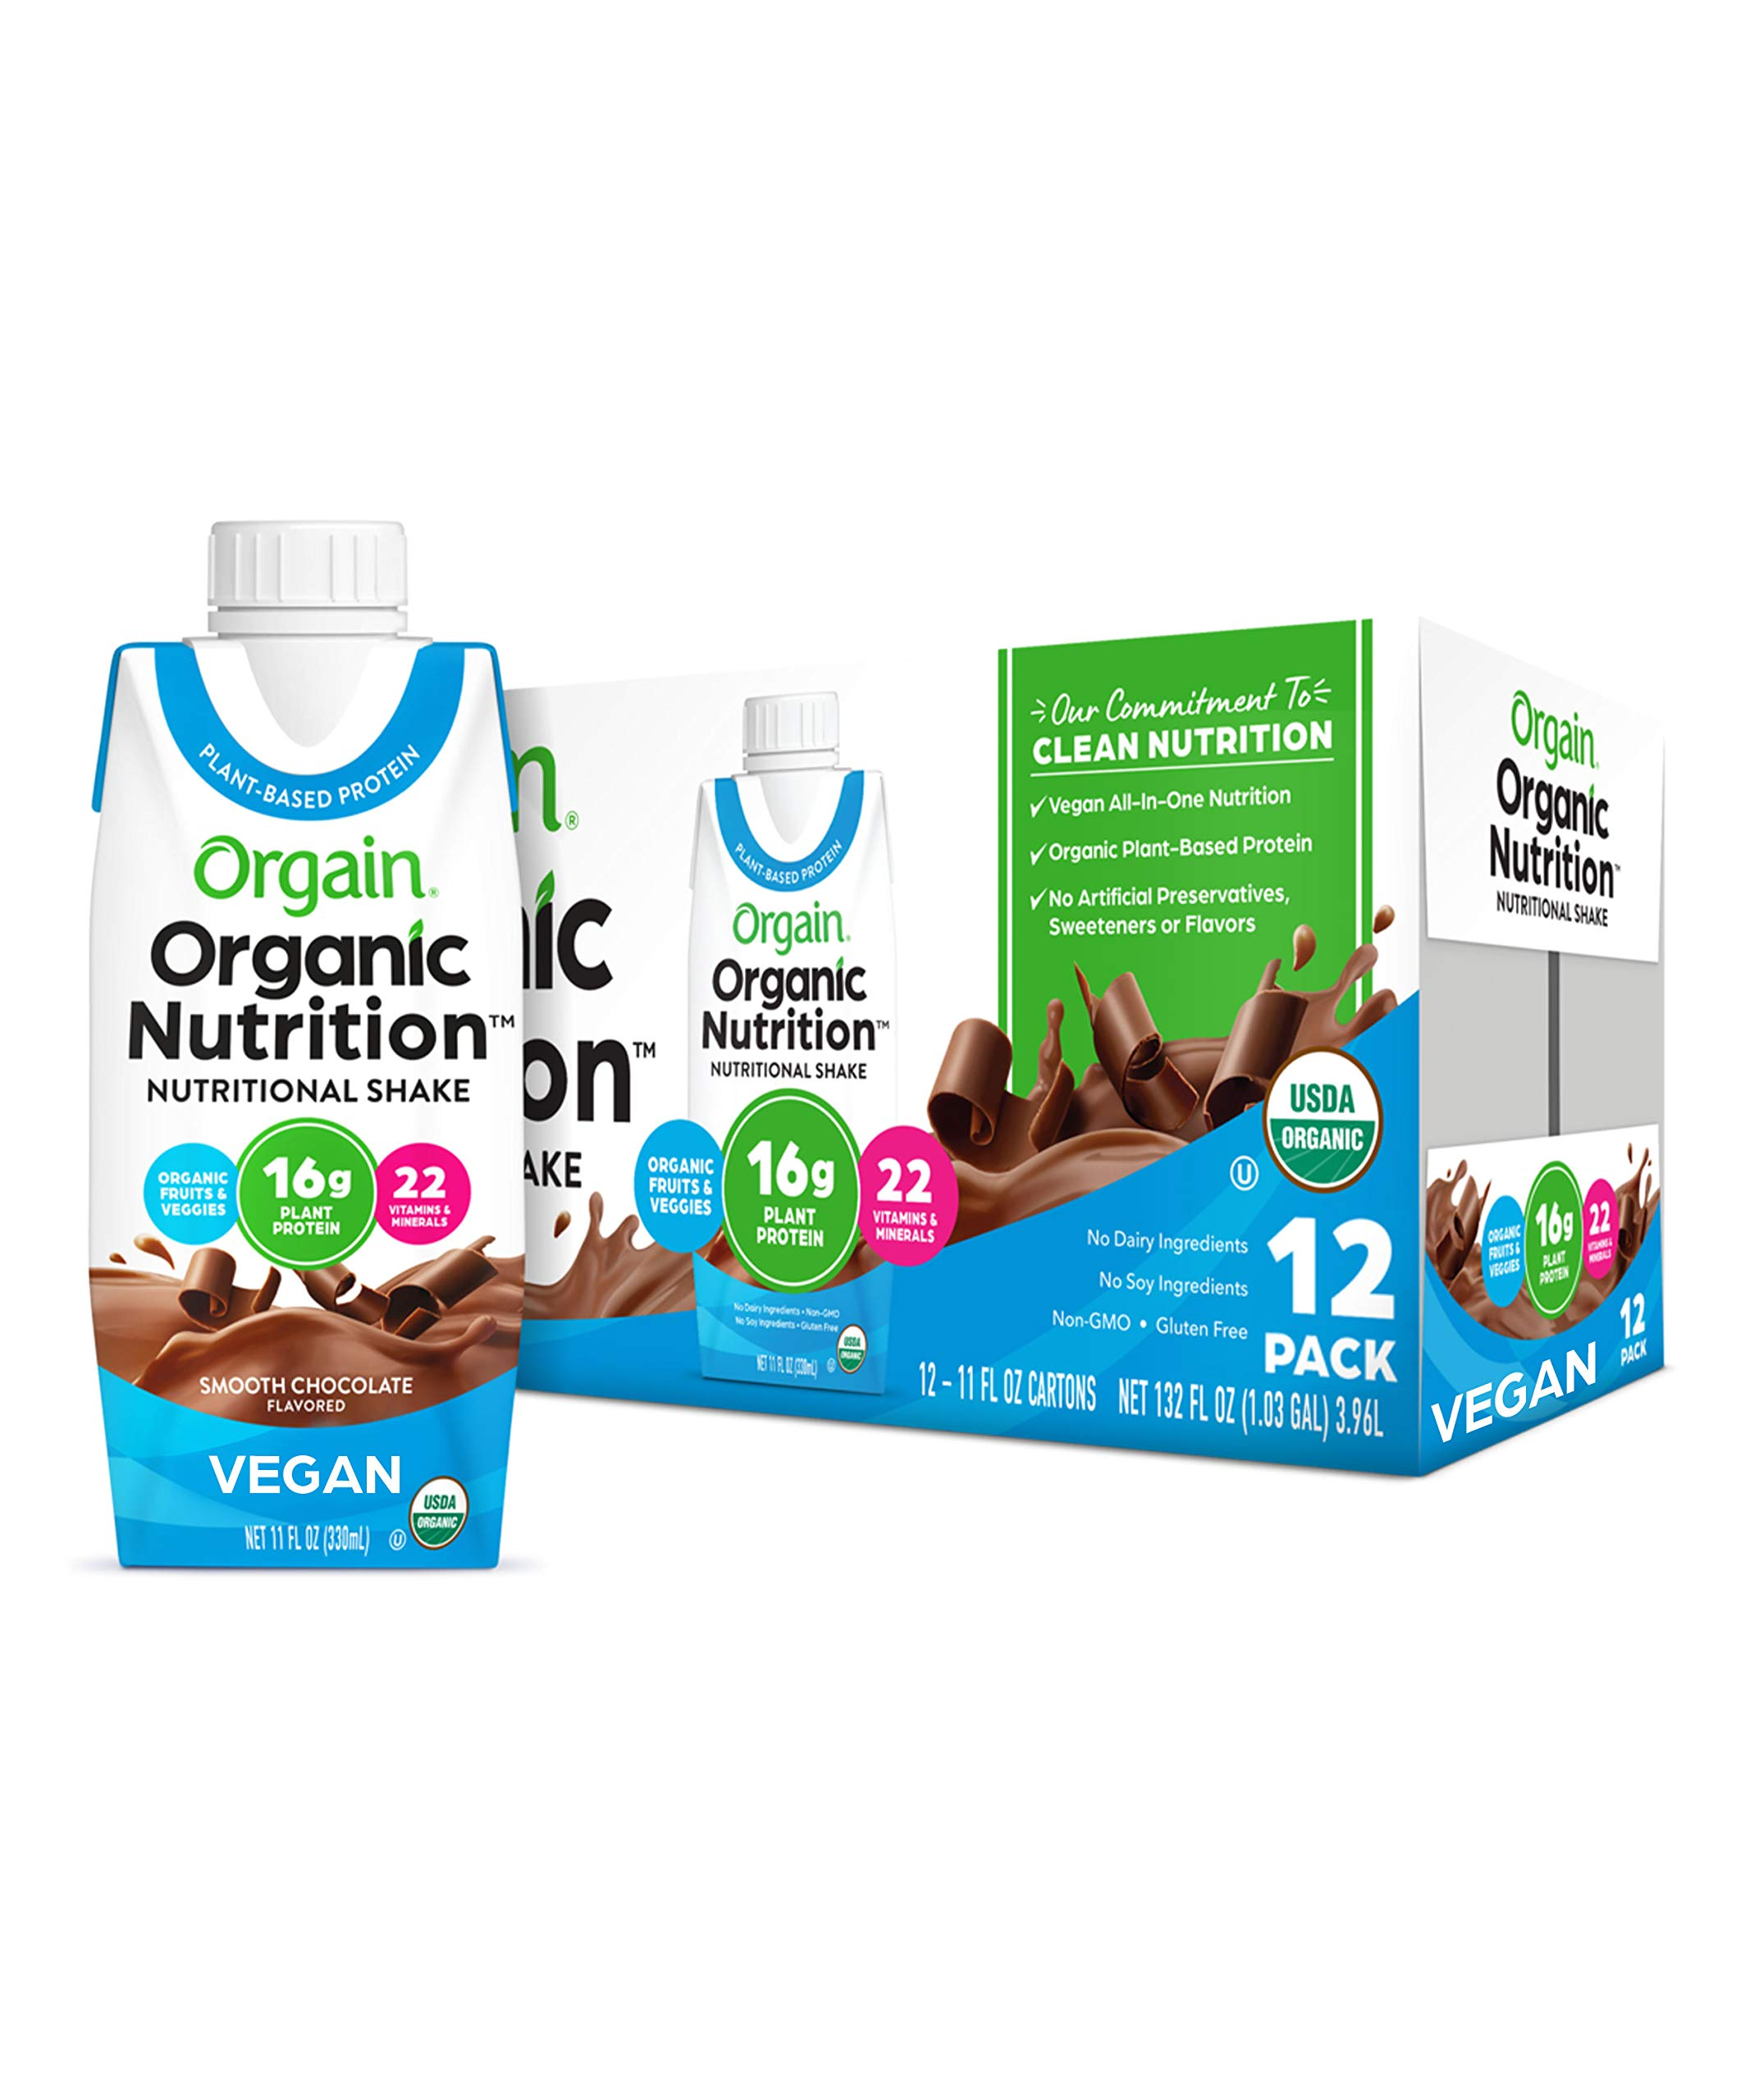 Orgain Organic Vegan Plant Based Nutritional Shake, Smooth Chocolate - Meal Replacement, 16g Protein, 21 Vitamins & Minerals, Dairy Free, Gluten Free, 11 Ounce, 12 Count (Packaging May Vary)